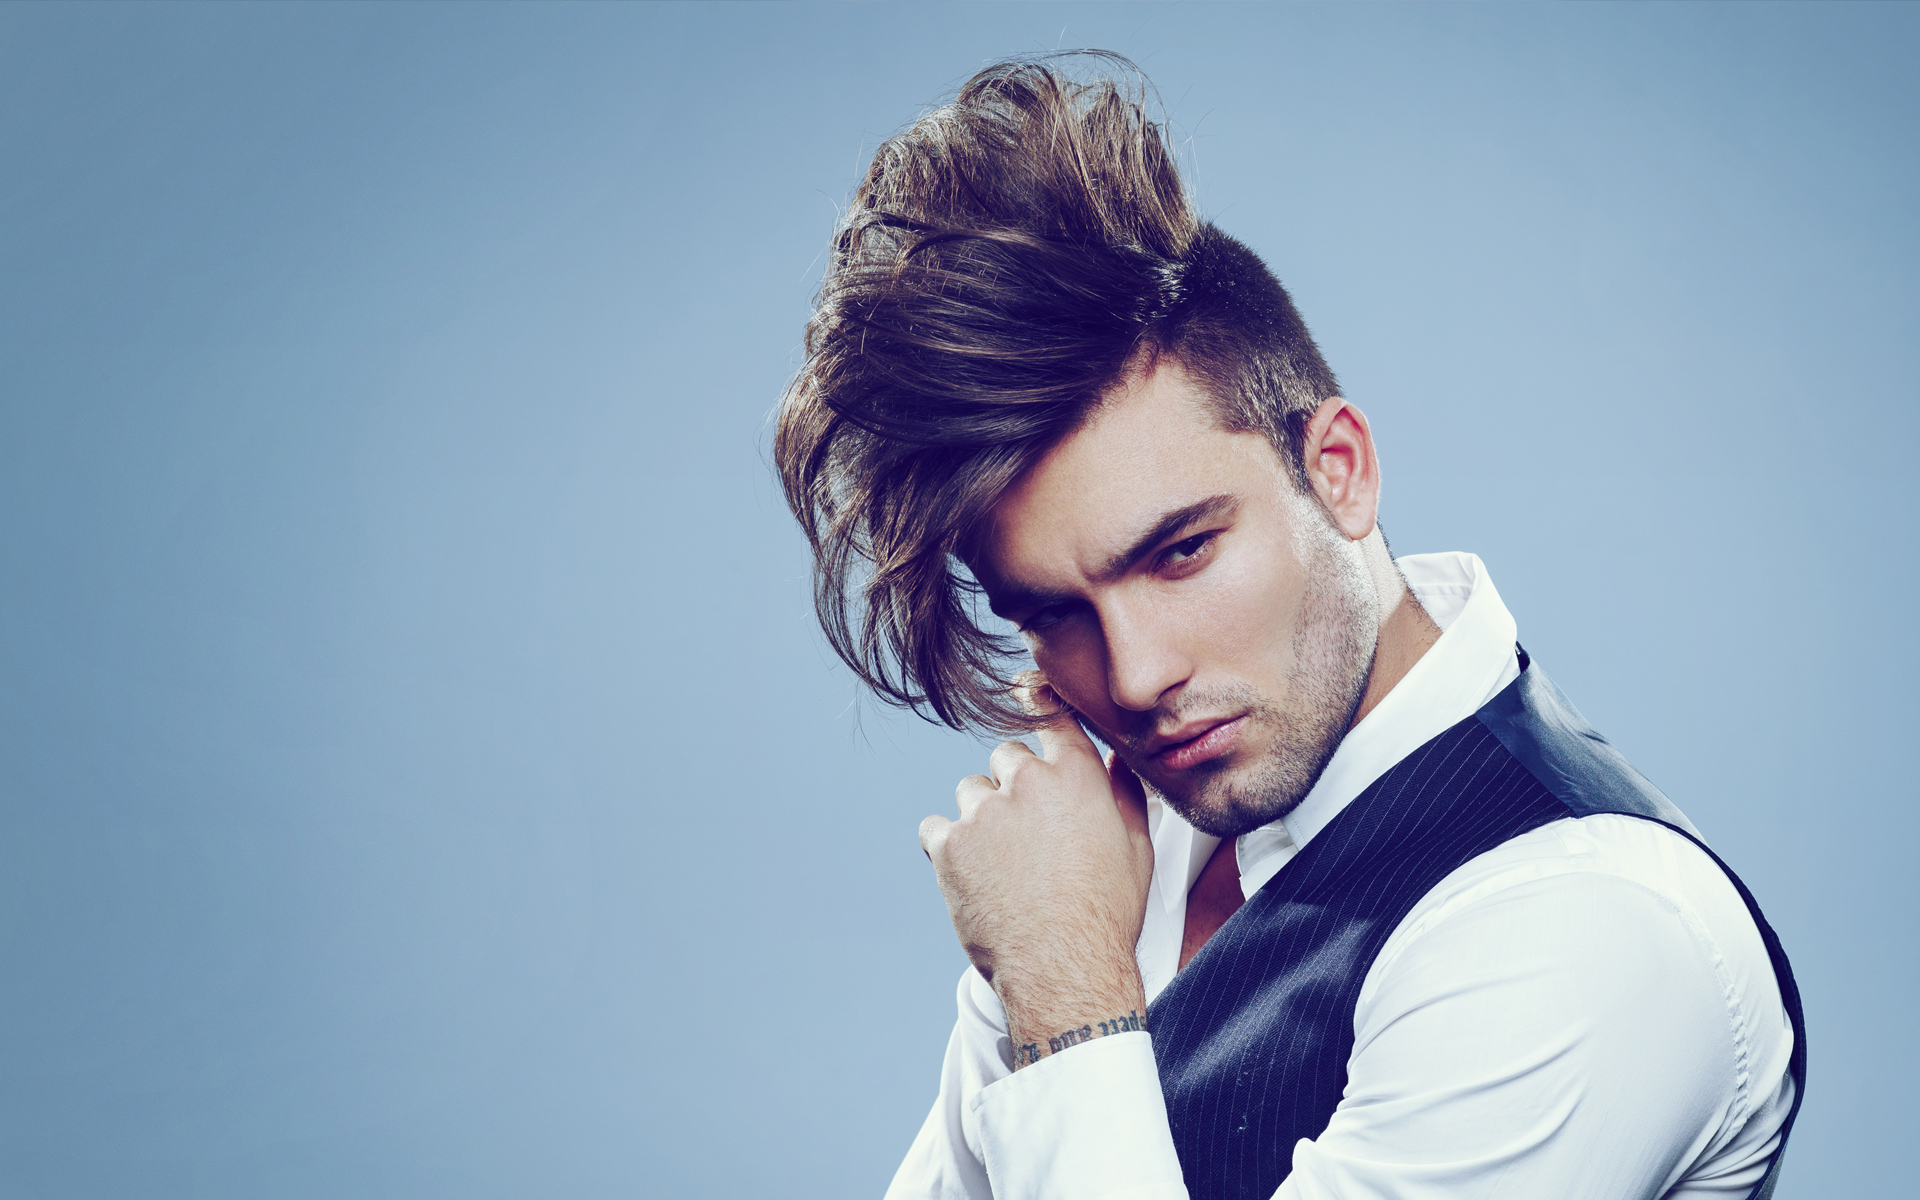 coiffure coupe homme tendance stage formation